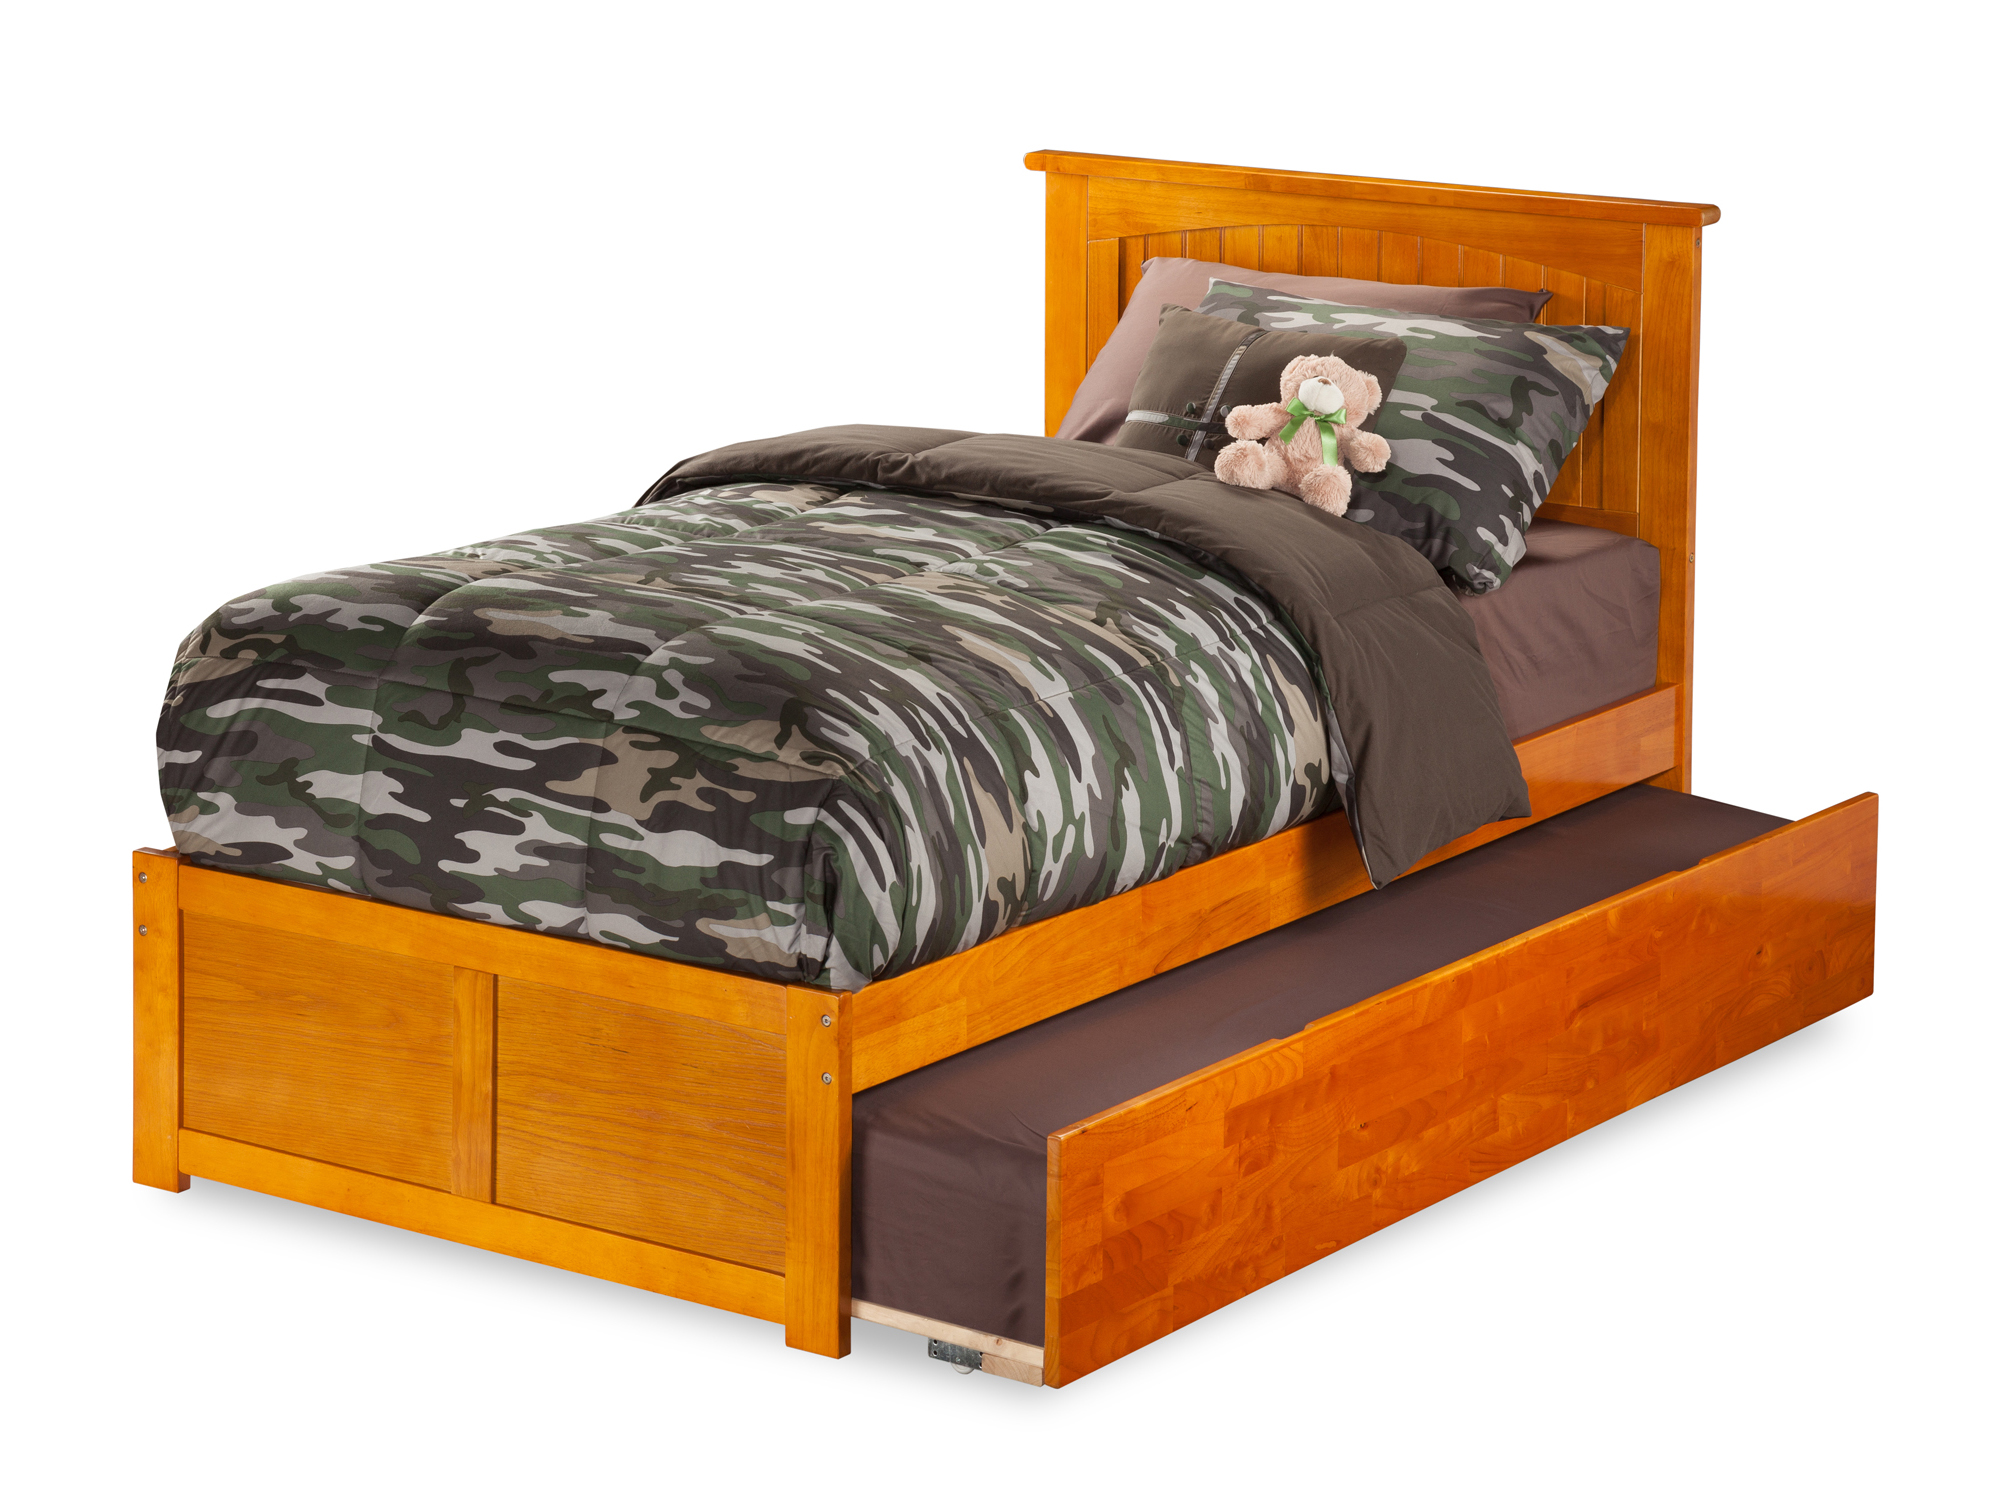 Nantucket Twin Platform Bed with Flat Panel Foot Board and Twin Size Urban Trundle Bed Bed in Caramel Latte by Atlantic Furniture